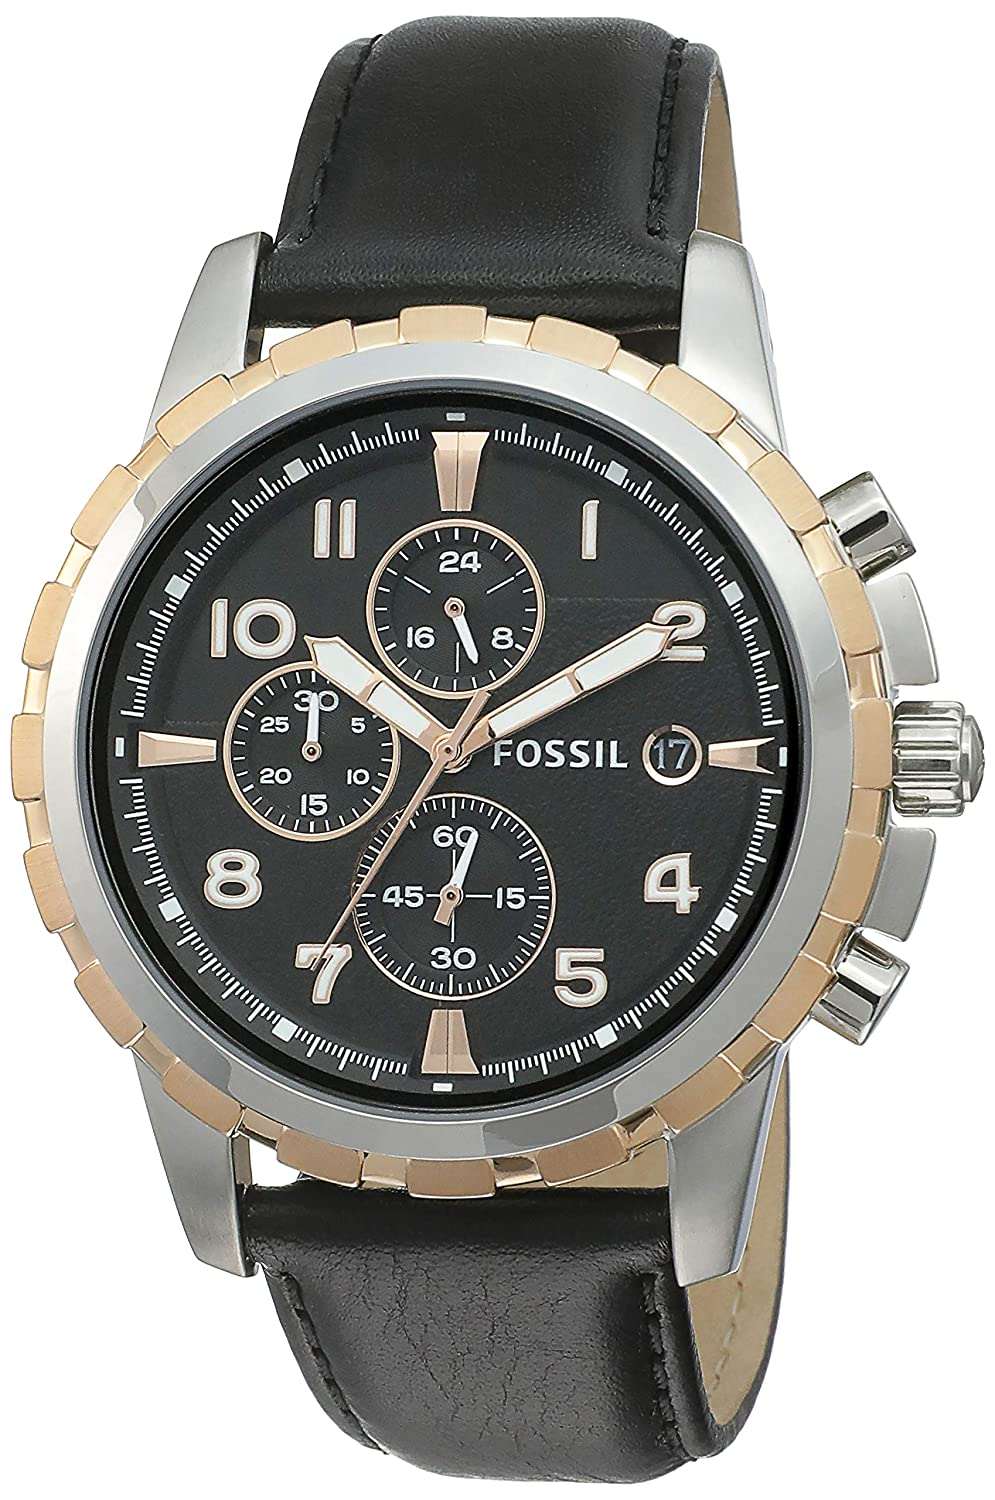 Fossil Chronograph Black Dial Best Mens Watches Under 5000 in India to buy in 2019 - Reviews & Buyers Guide